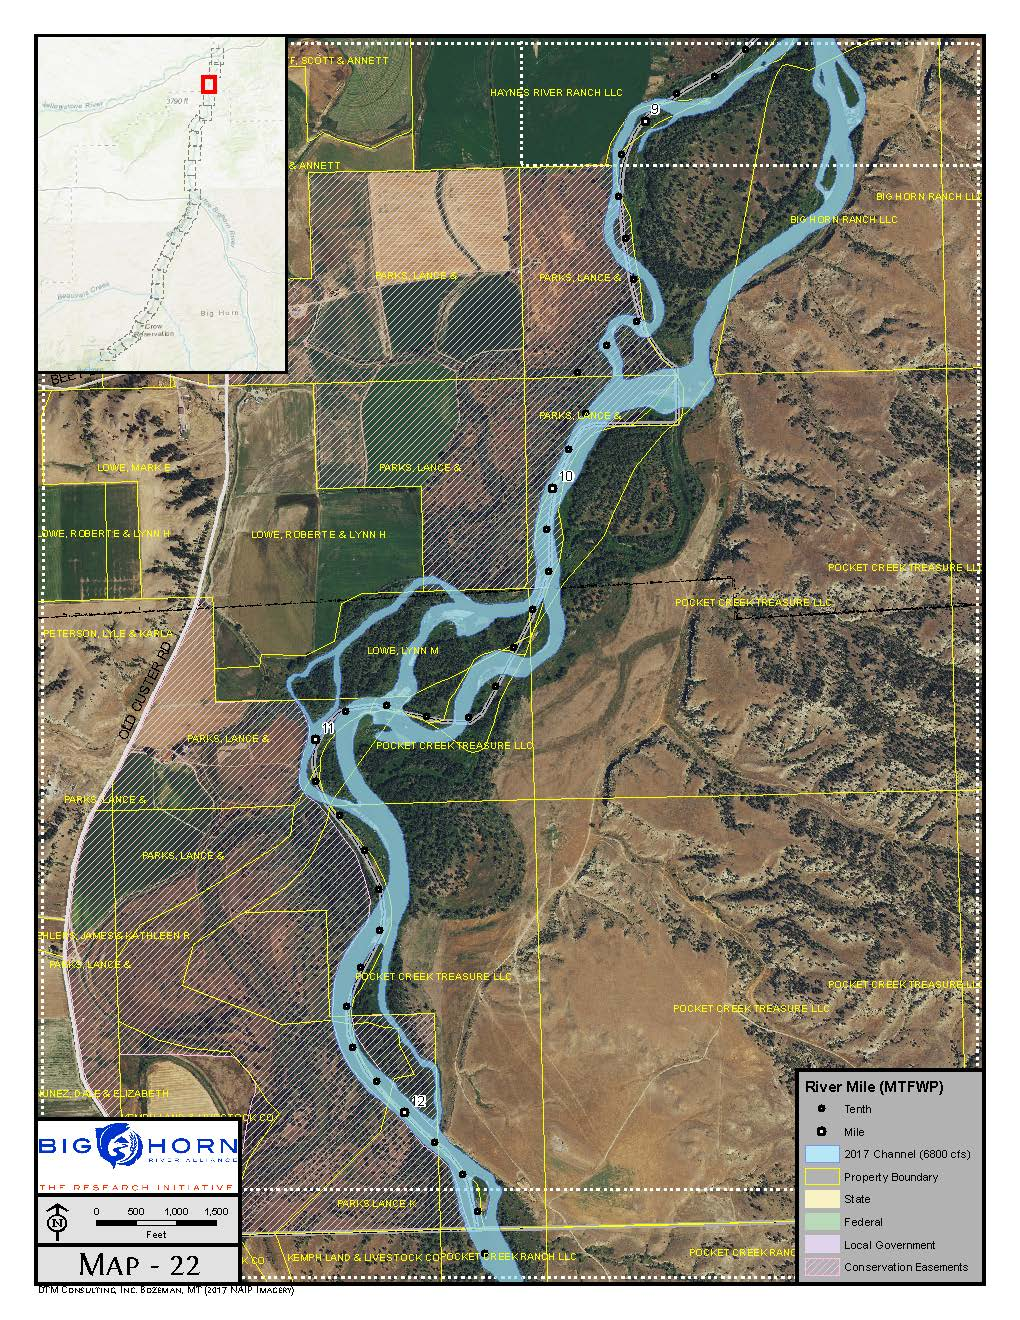 Big Horn River Atlas v5 wOwners_Page_22.